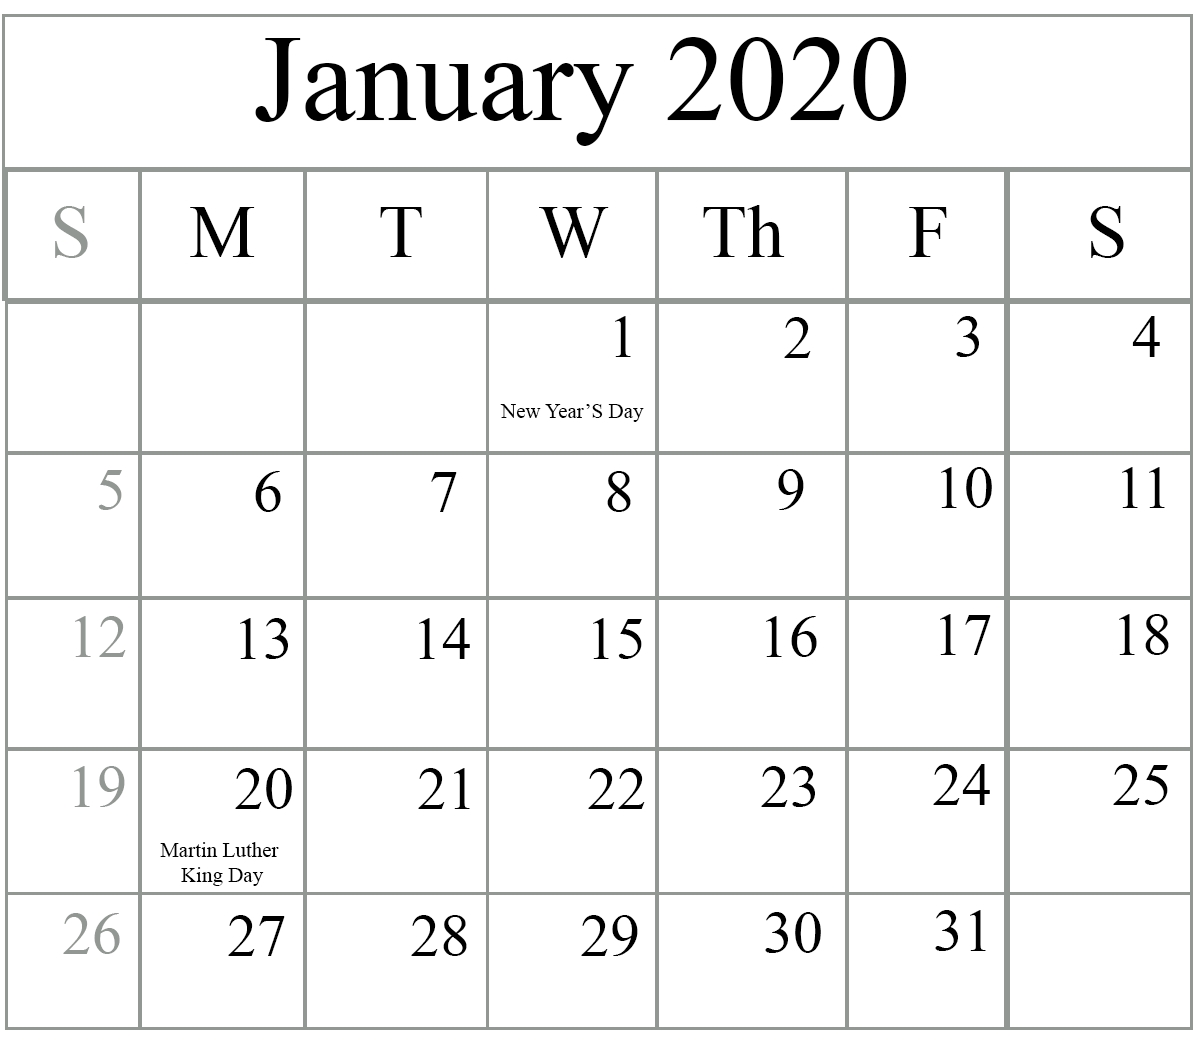 Free January 2020 Printable Calendar In Pdf, Excel & Word-January 2020 Calendar Free Printable